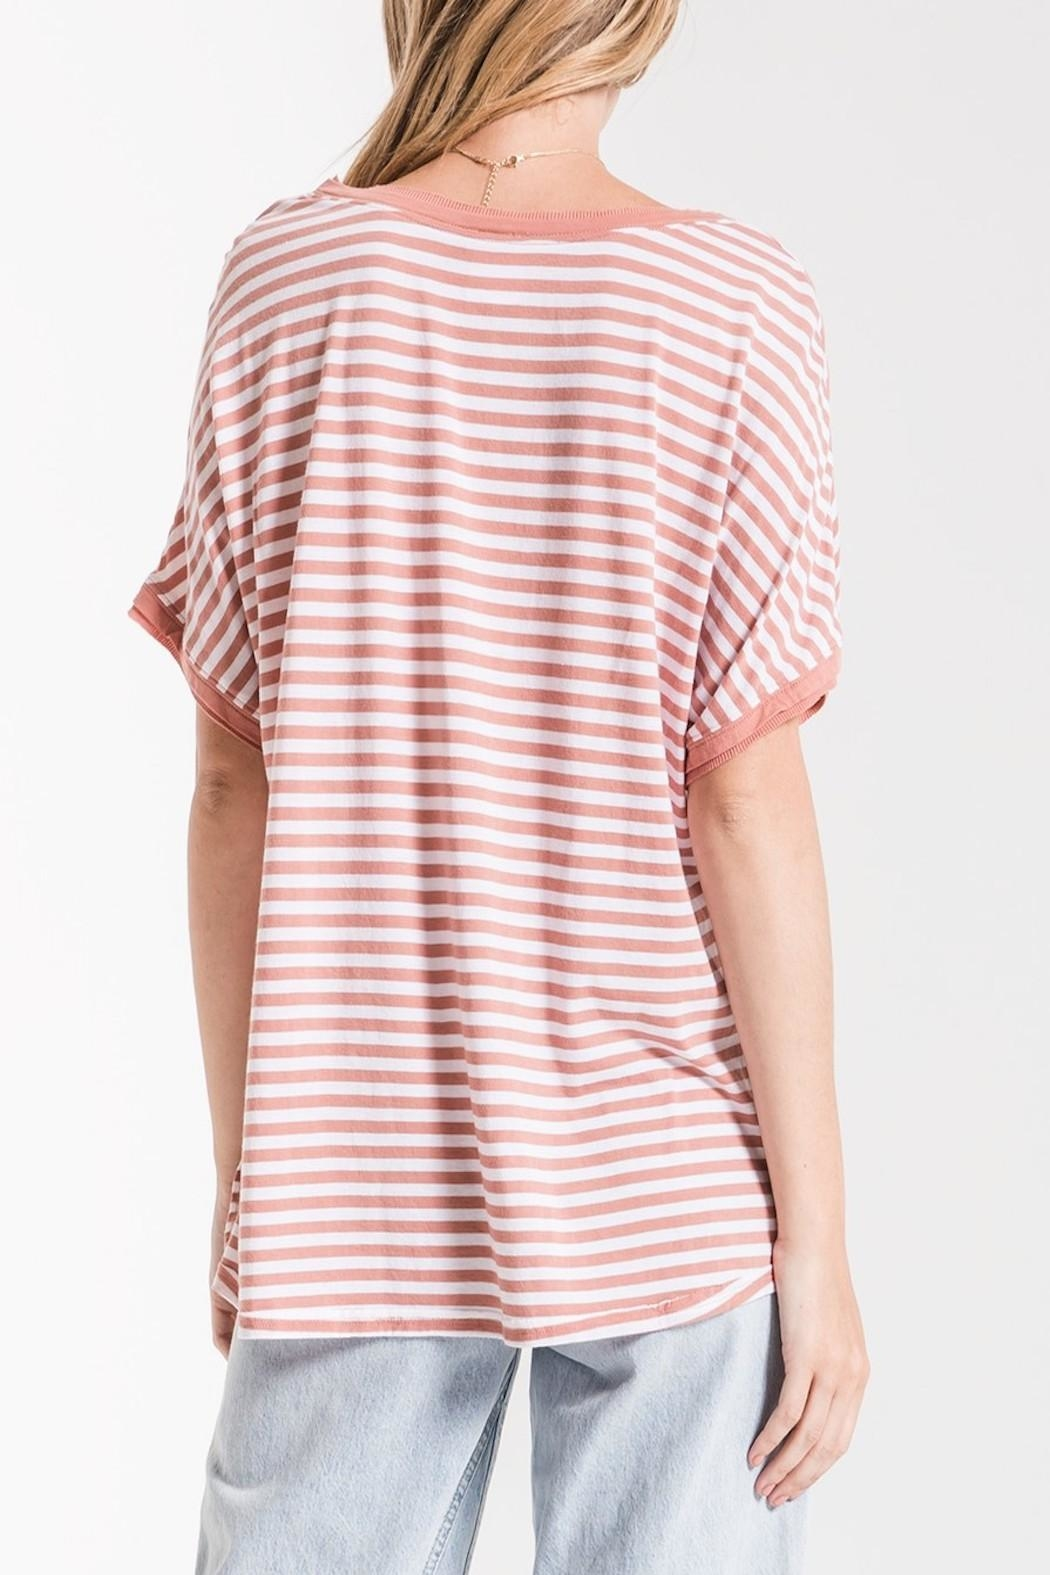 Apricot Lane St. Cloud Striped Bf-Tee-Rose - Side Cropped Image